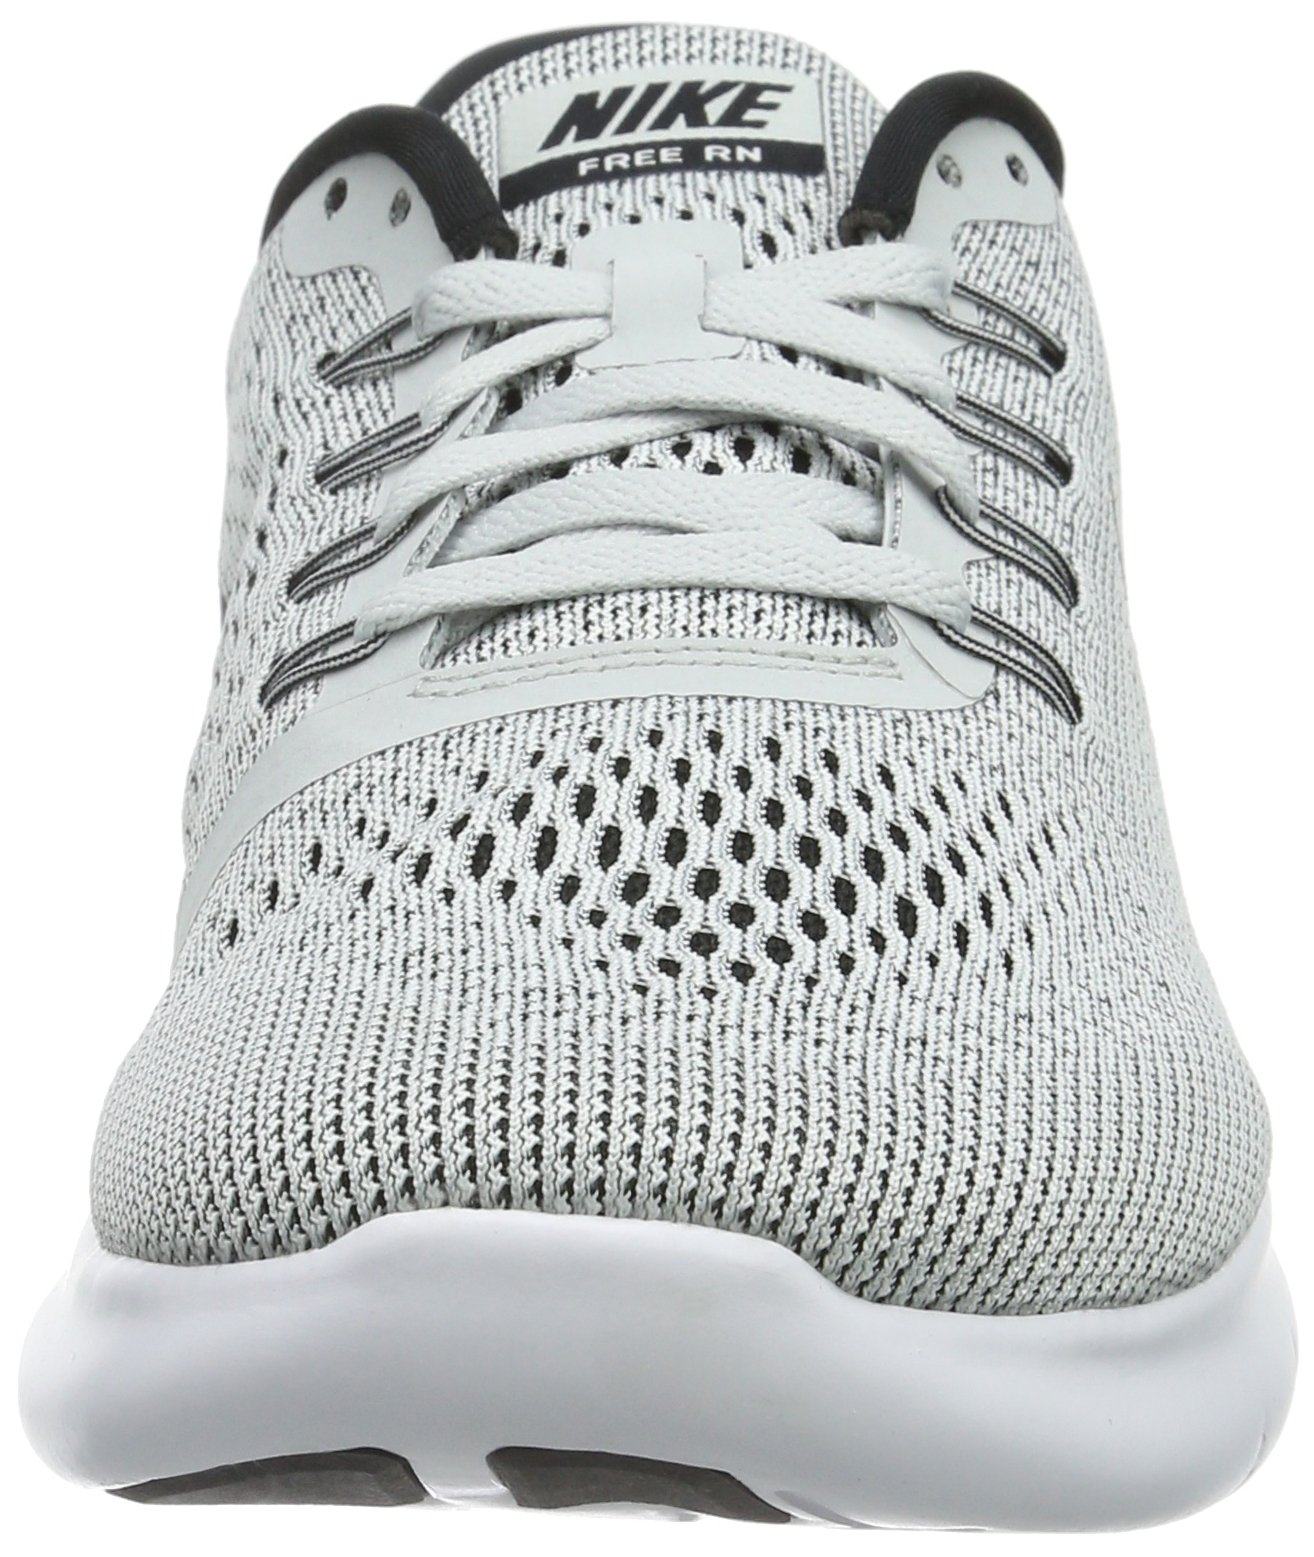 Nike Womens Free Rn Low Top Lace Up Running Sneaker, White, Size 5.5 by Nike (Image #4)